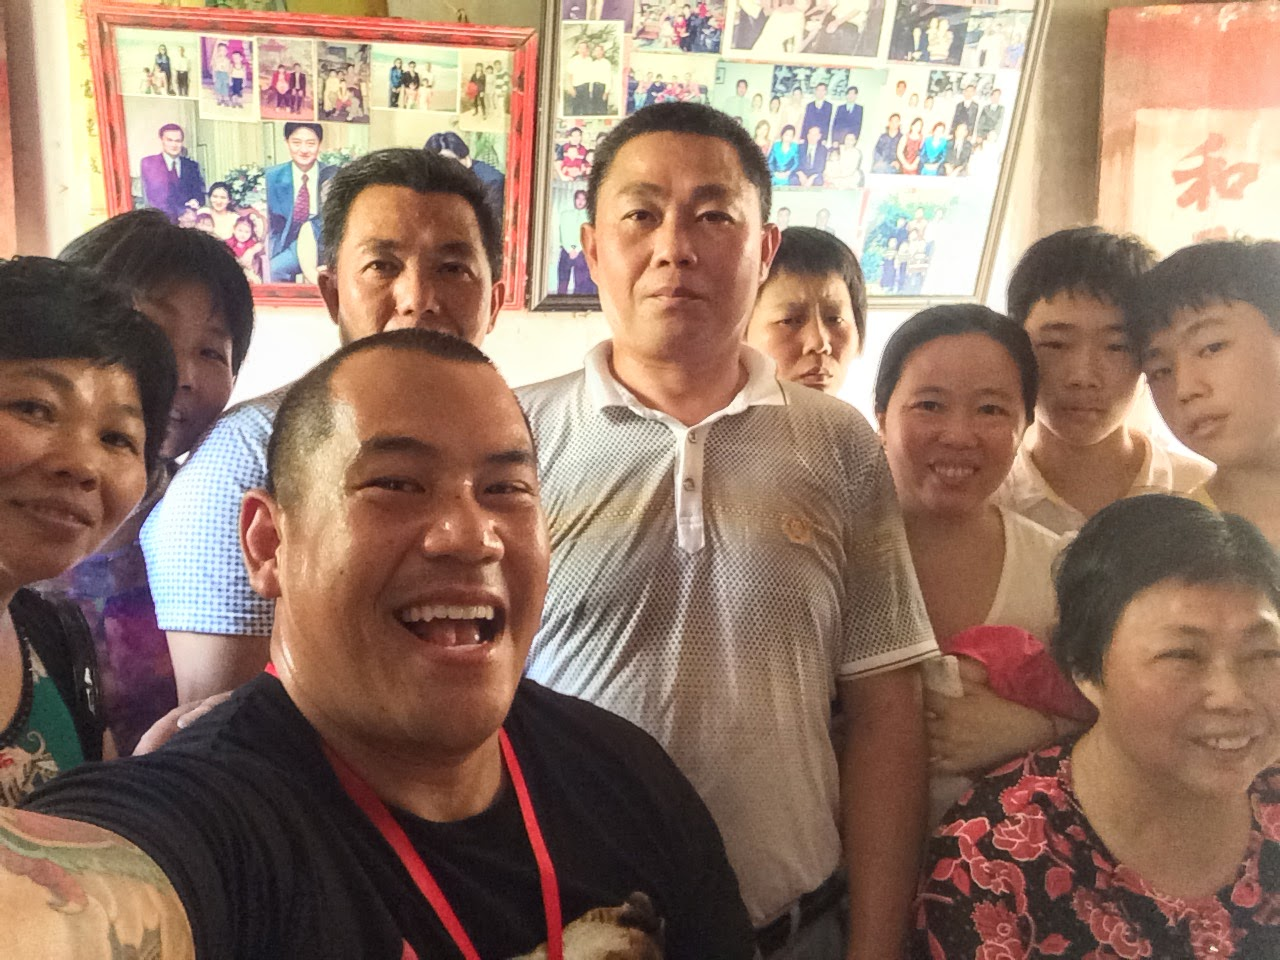 taking a family group selfie